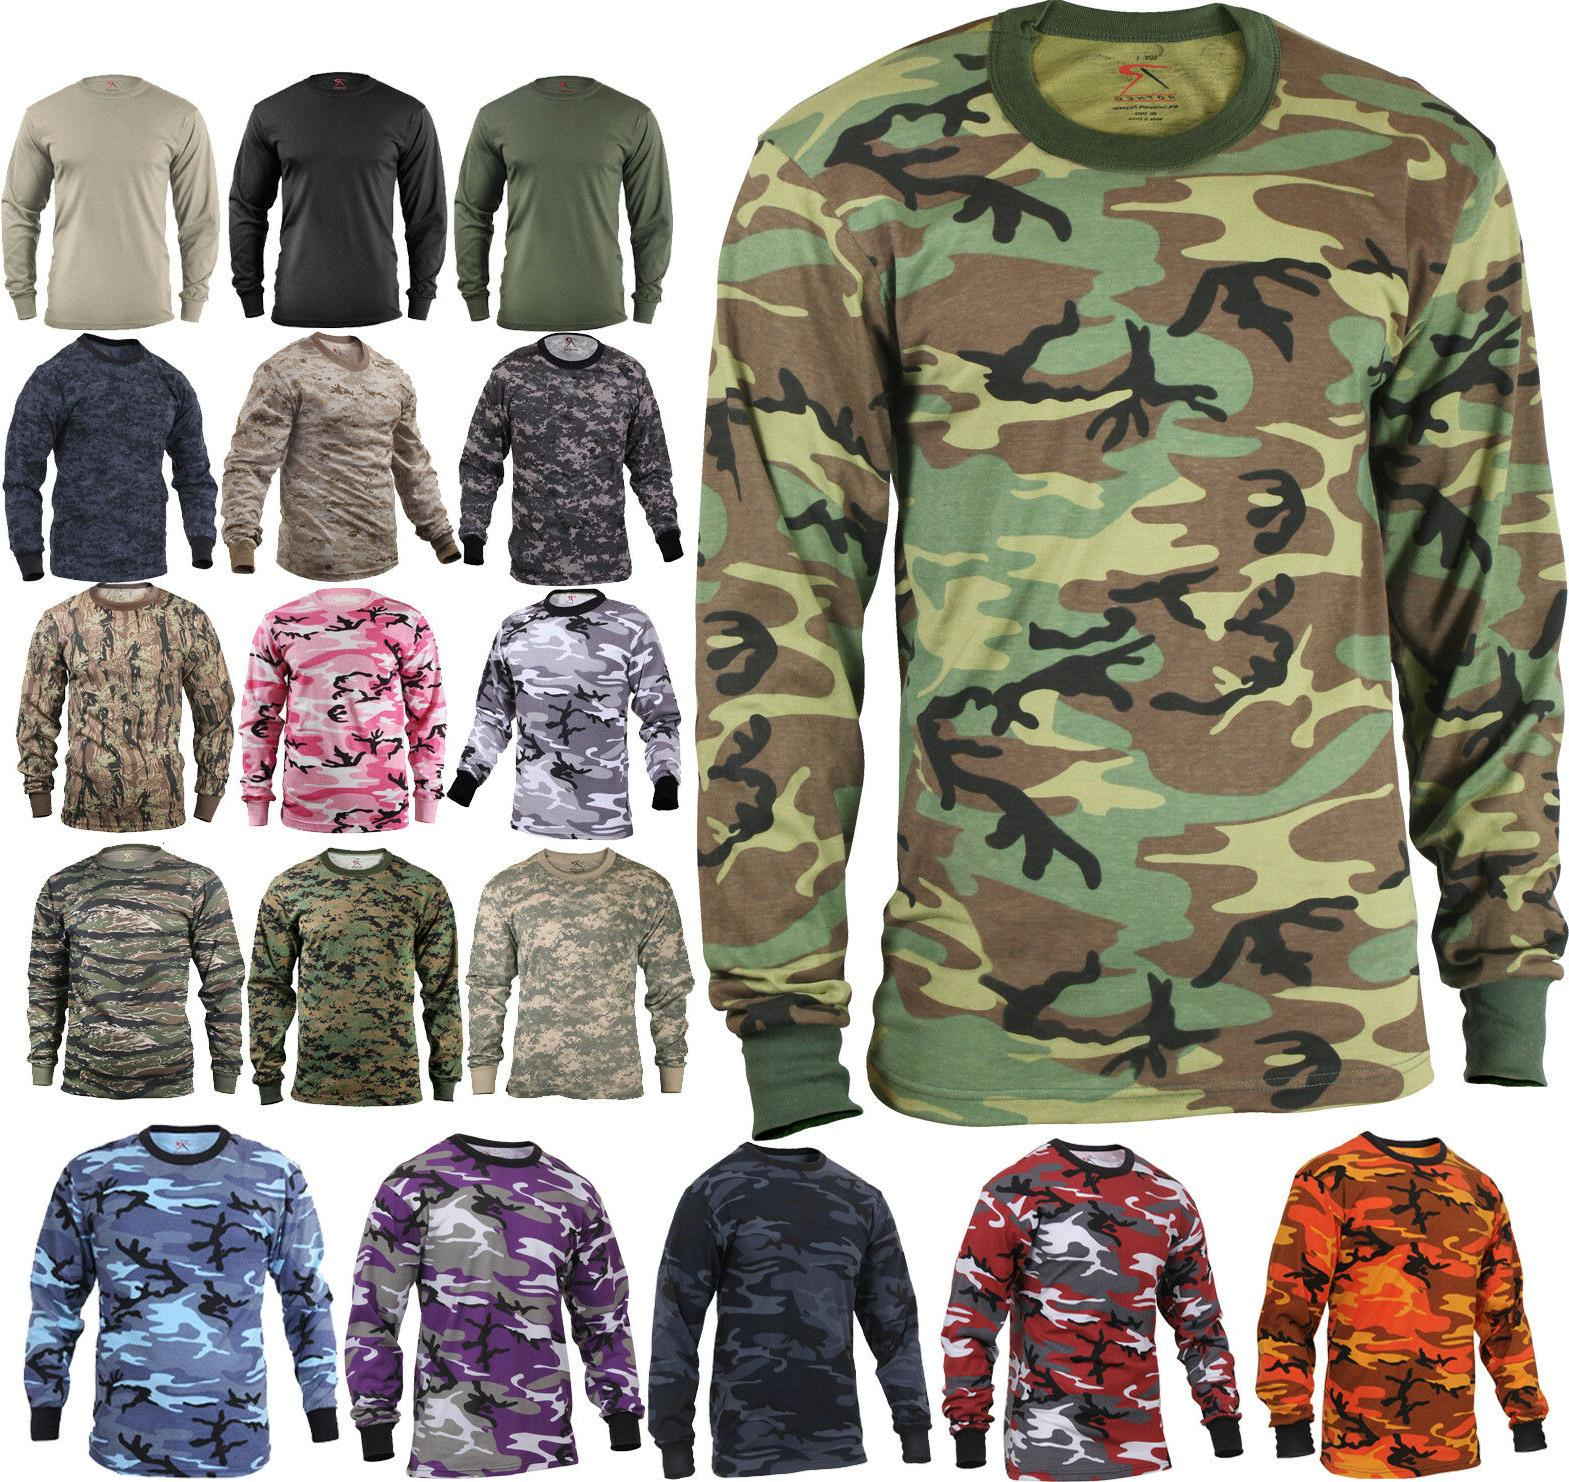 Camo Long T-Shirt Tactical Undershirt Camouflage